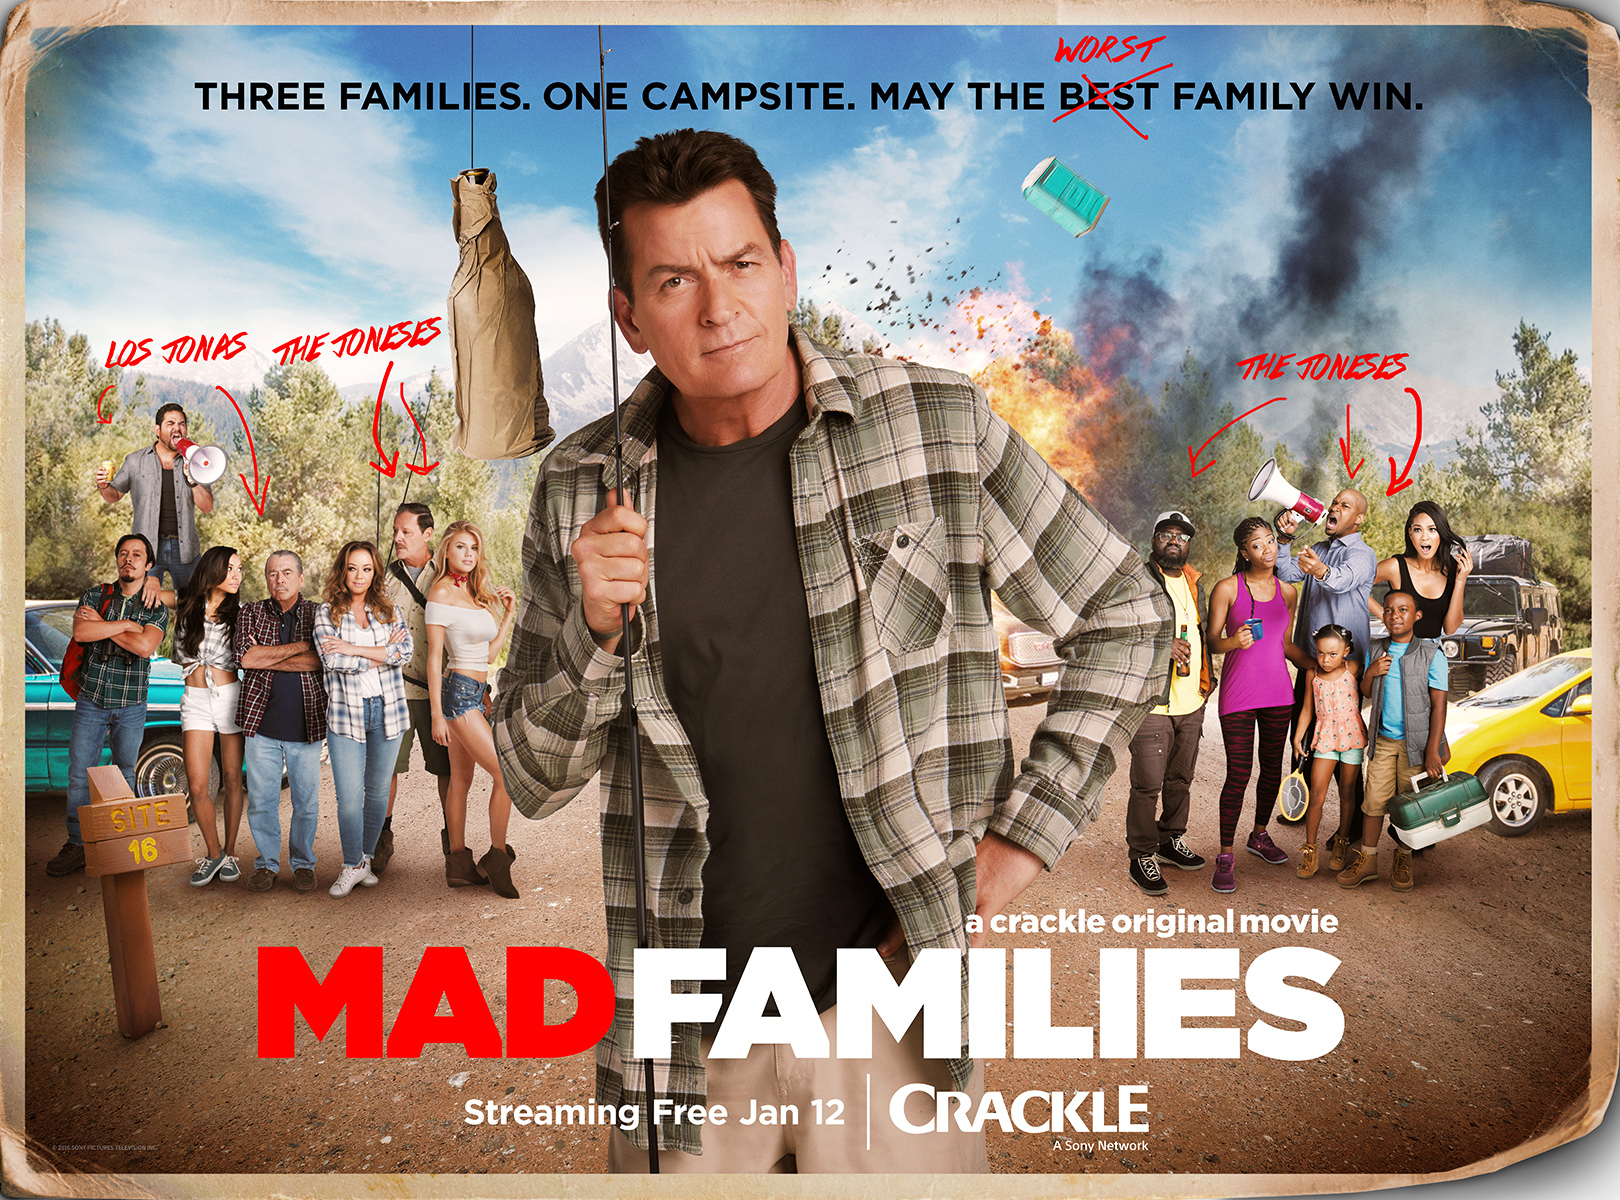 NO CROPS | Movies: 'Mad Families' starring Charlie Sheen, Leah Remini, Finesse Mitchell, Naya Rivera